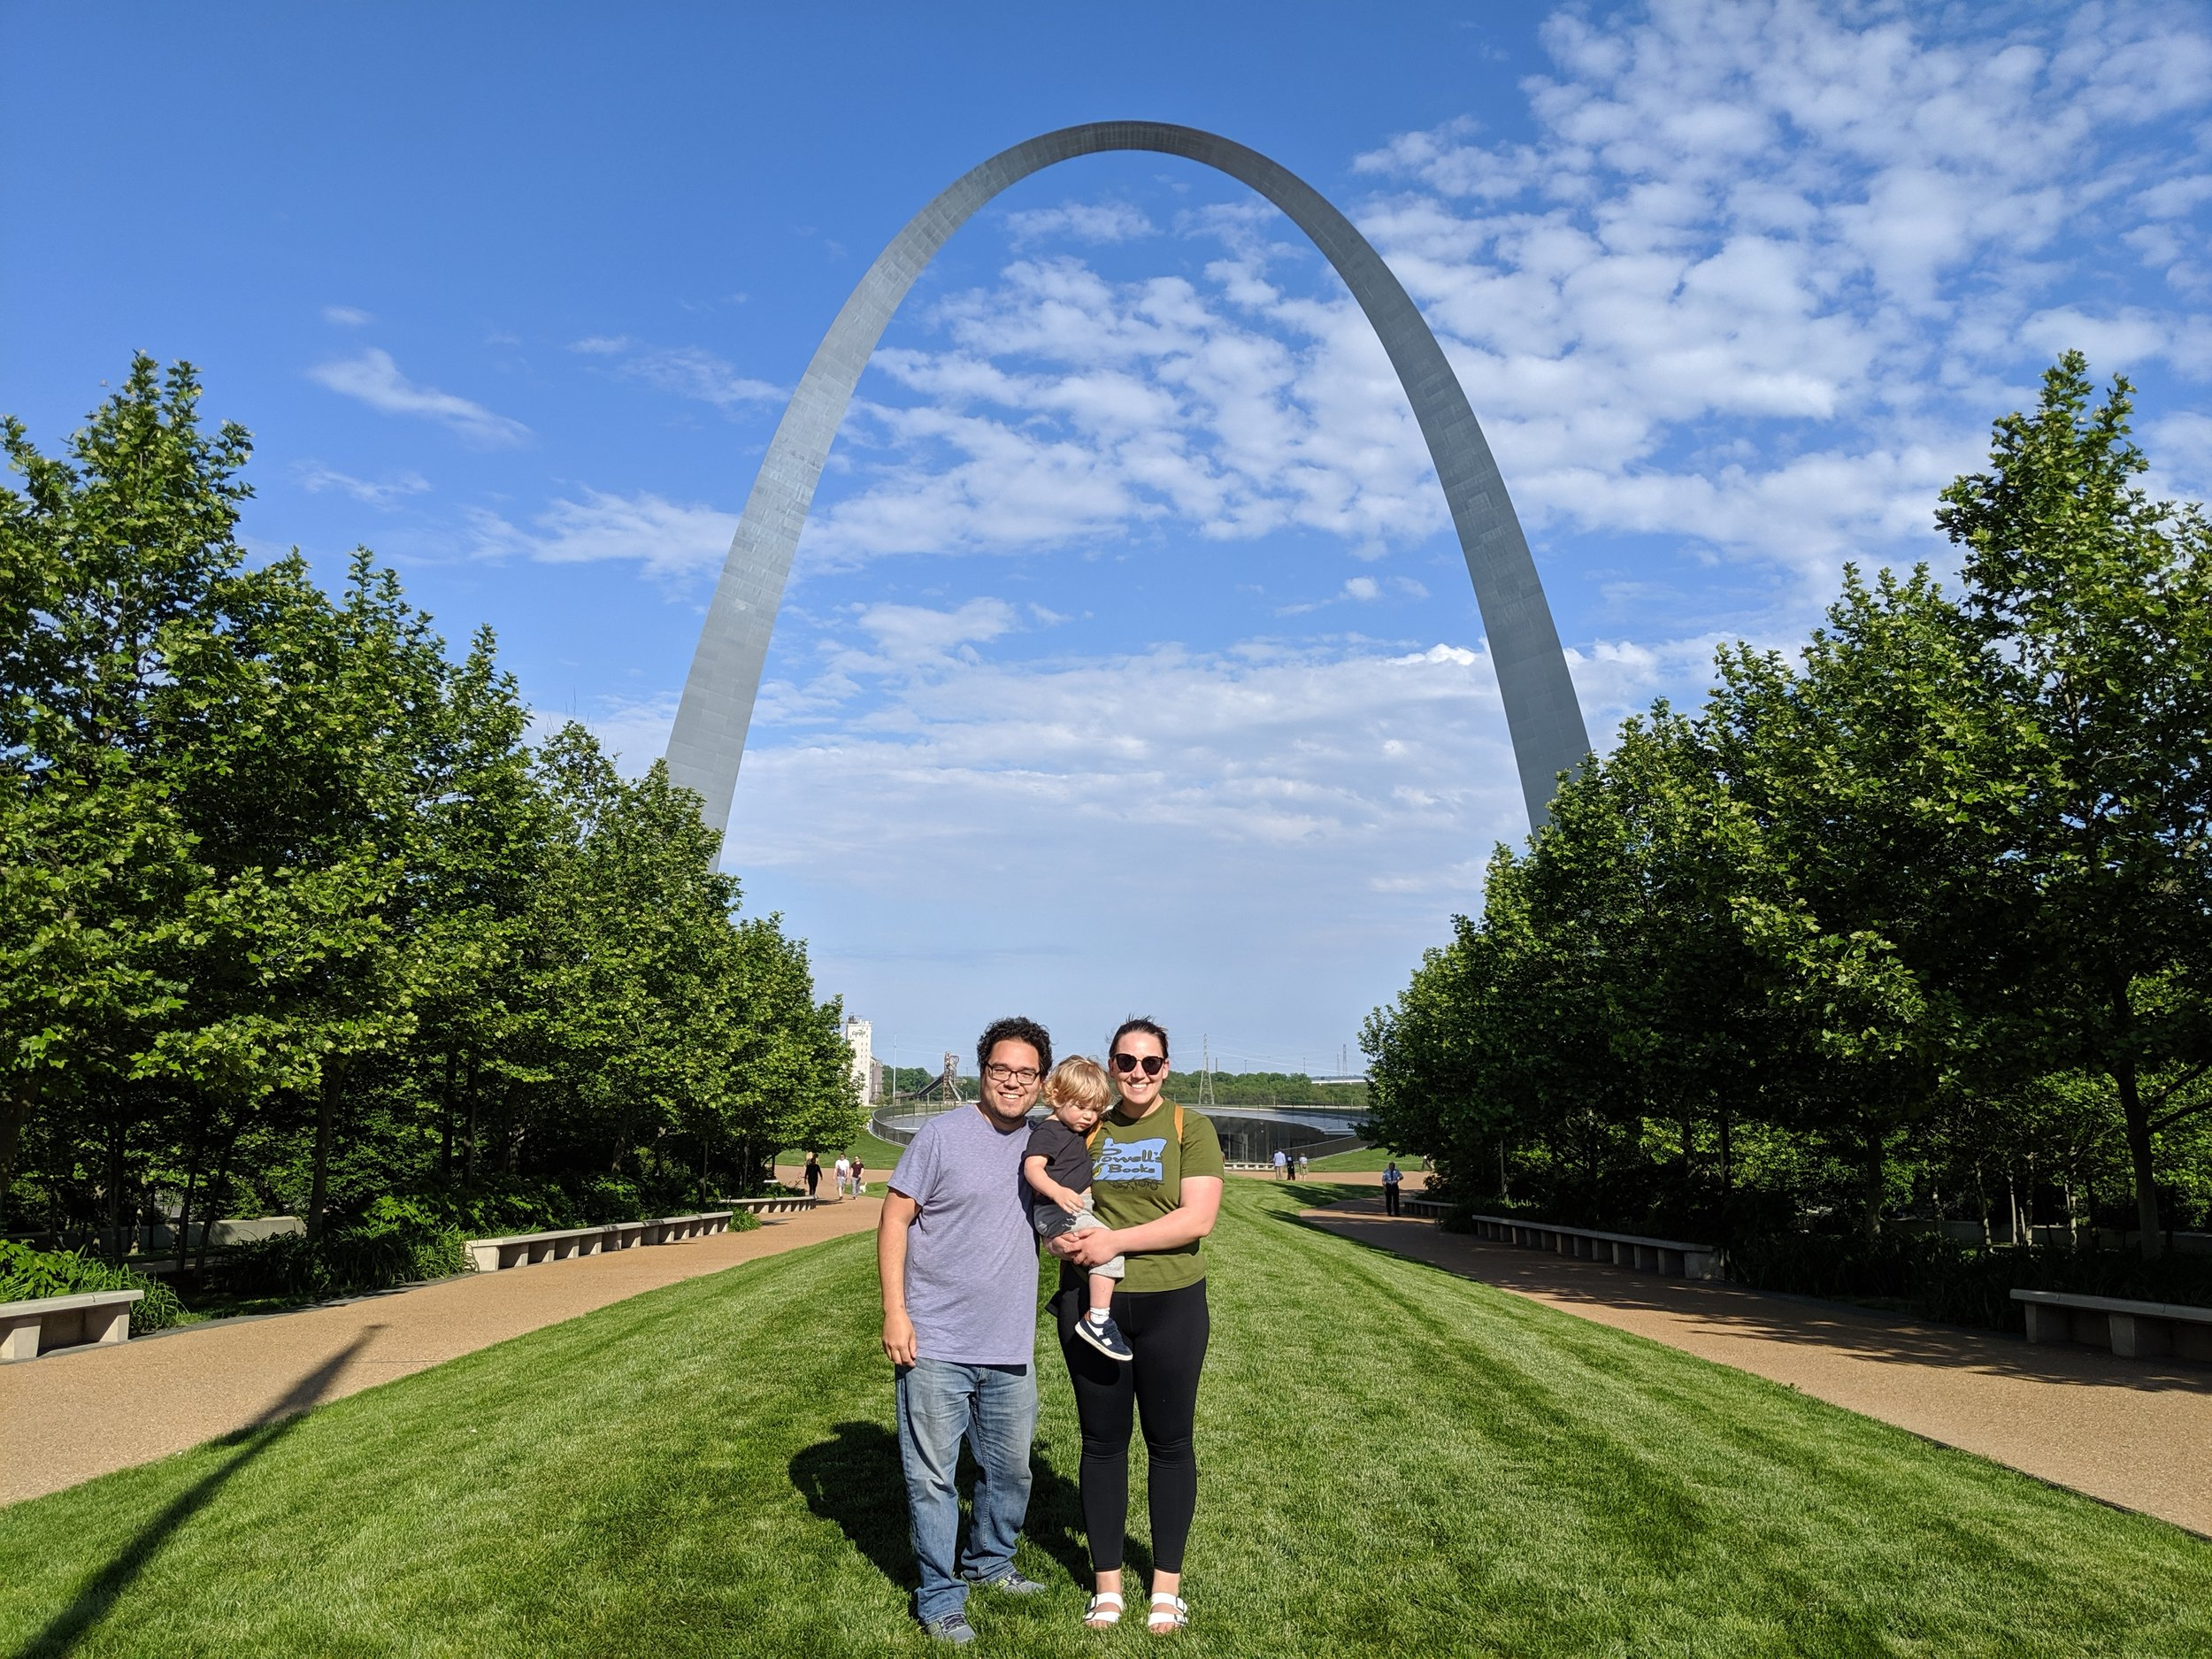 A stranger was kind enough to offer to take a photo of the three of us at the Arch.